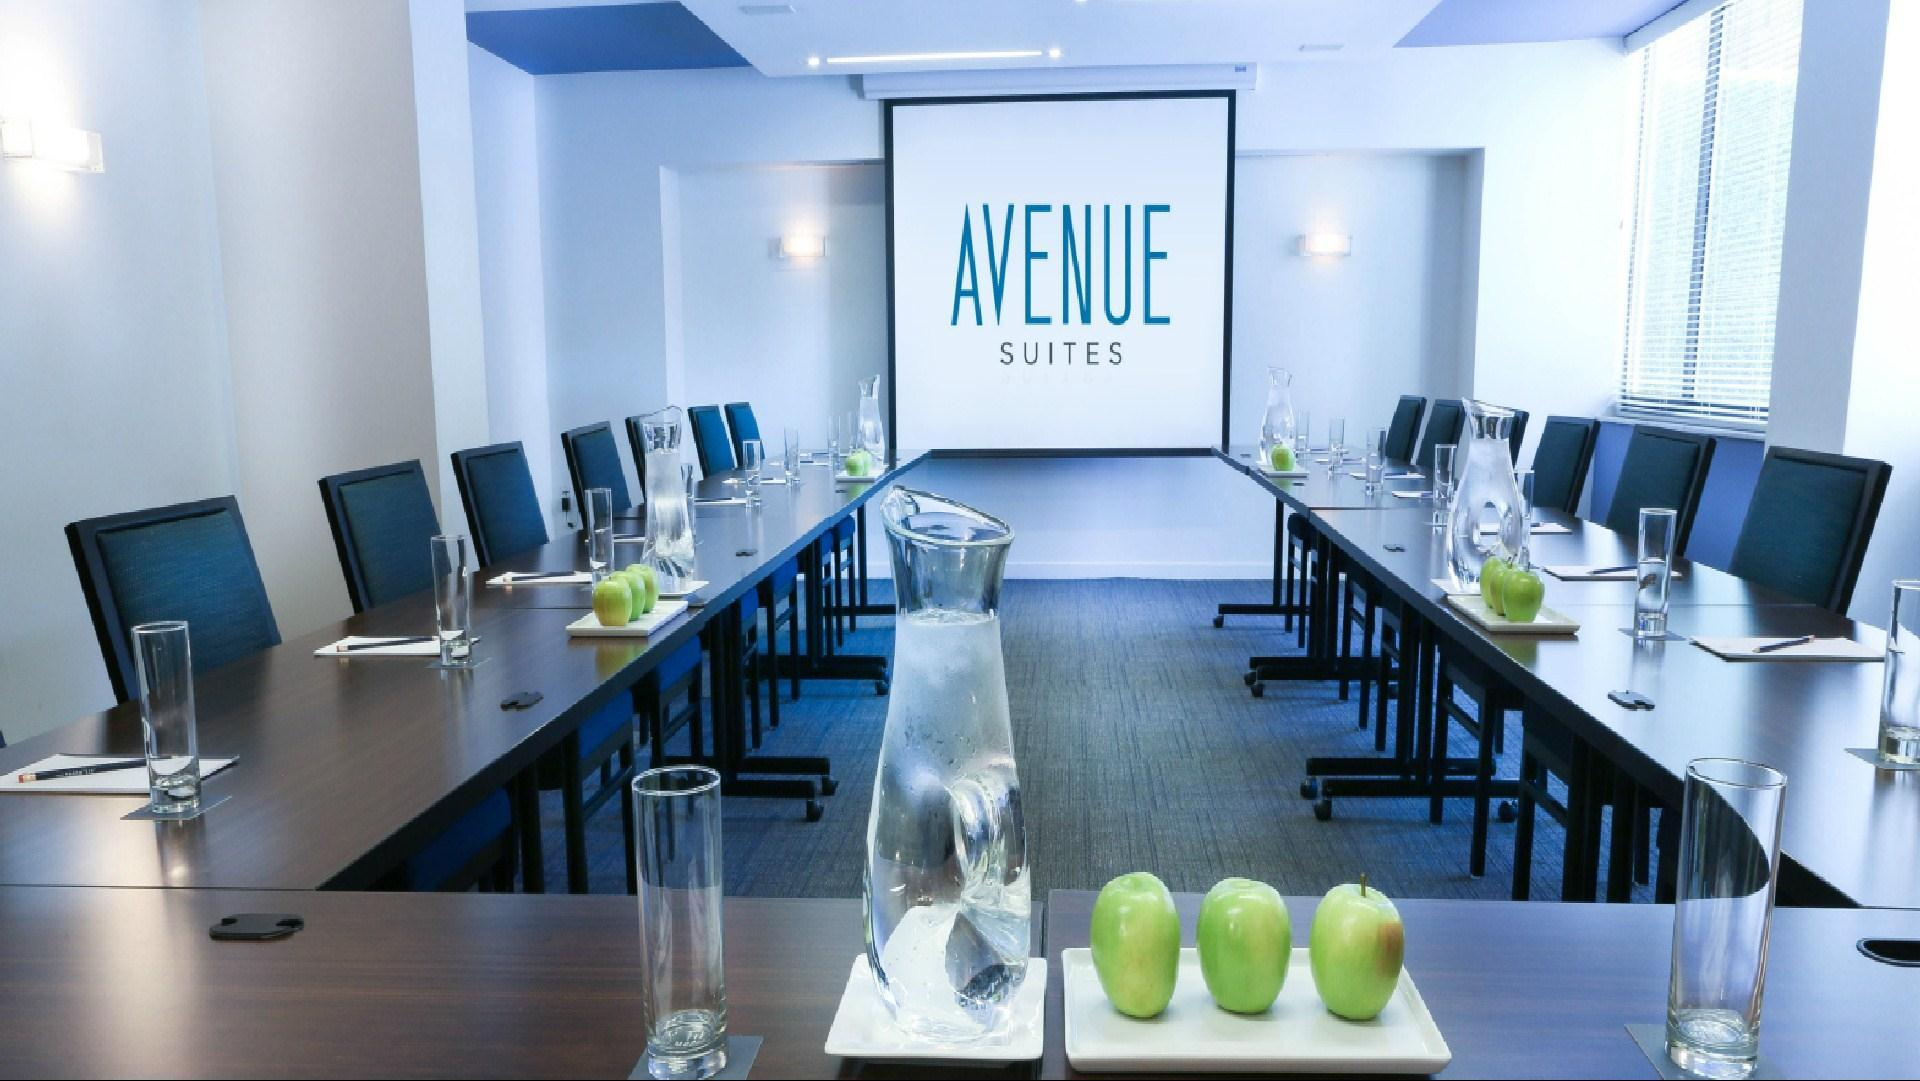 Meetings and Events at Avenue Suites, Washington, DC, US